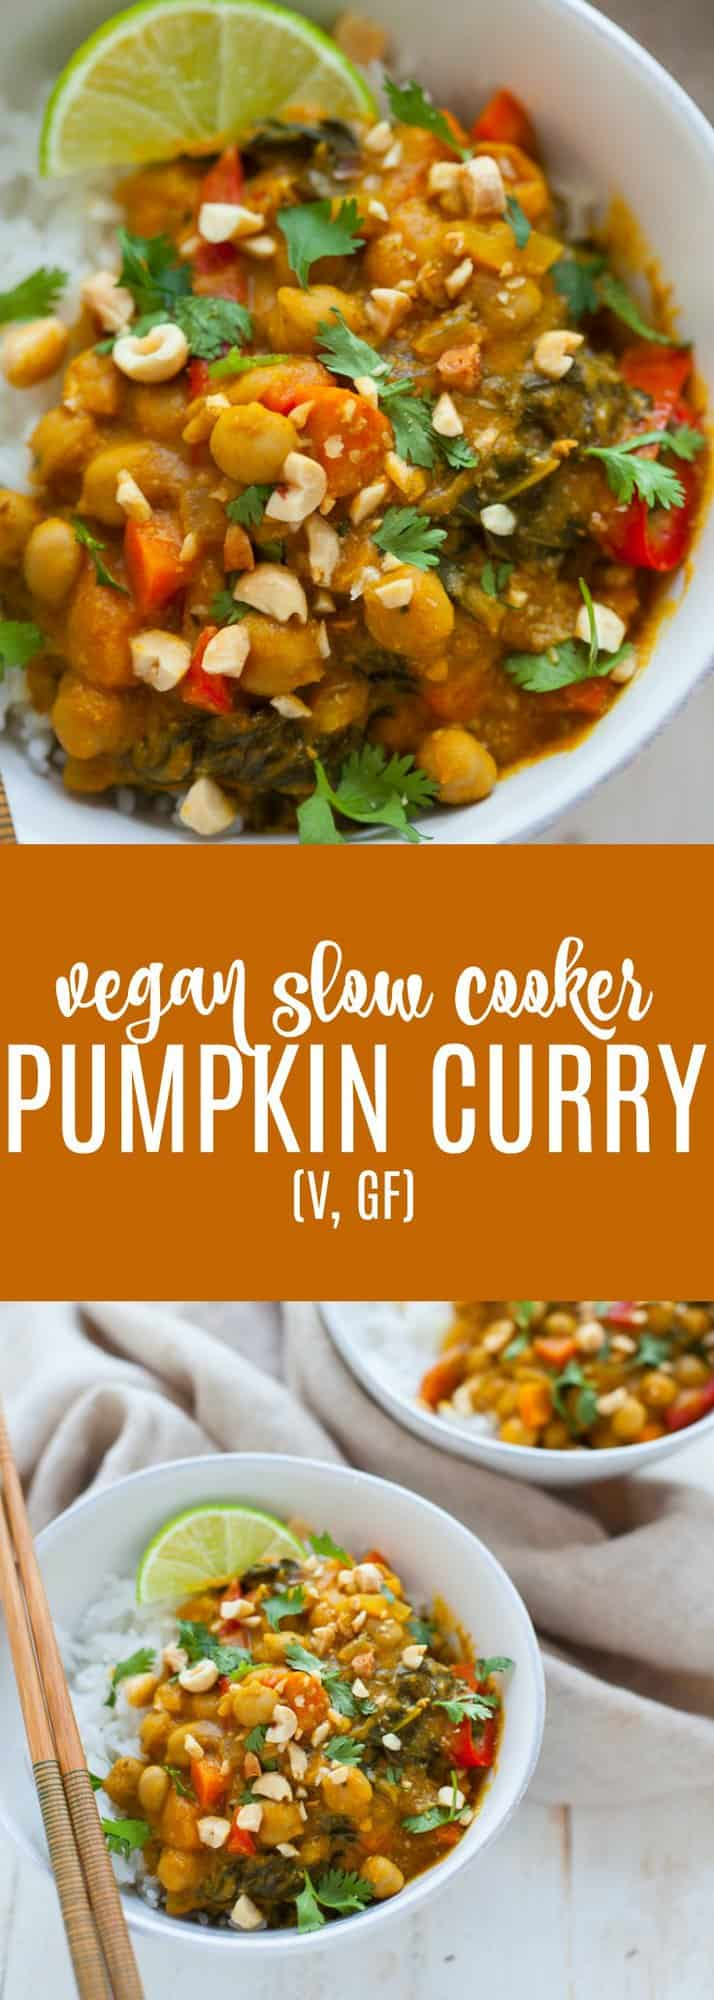 A warm and hearty vegan slow cooker pumpkin curry that's sure to satisfy on a cold fall or winter night.